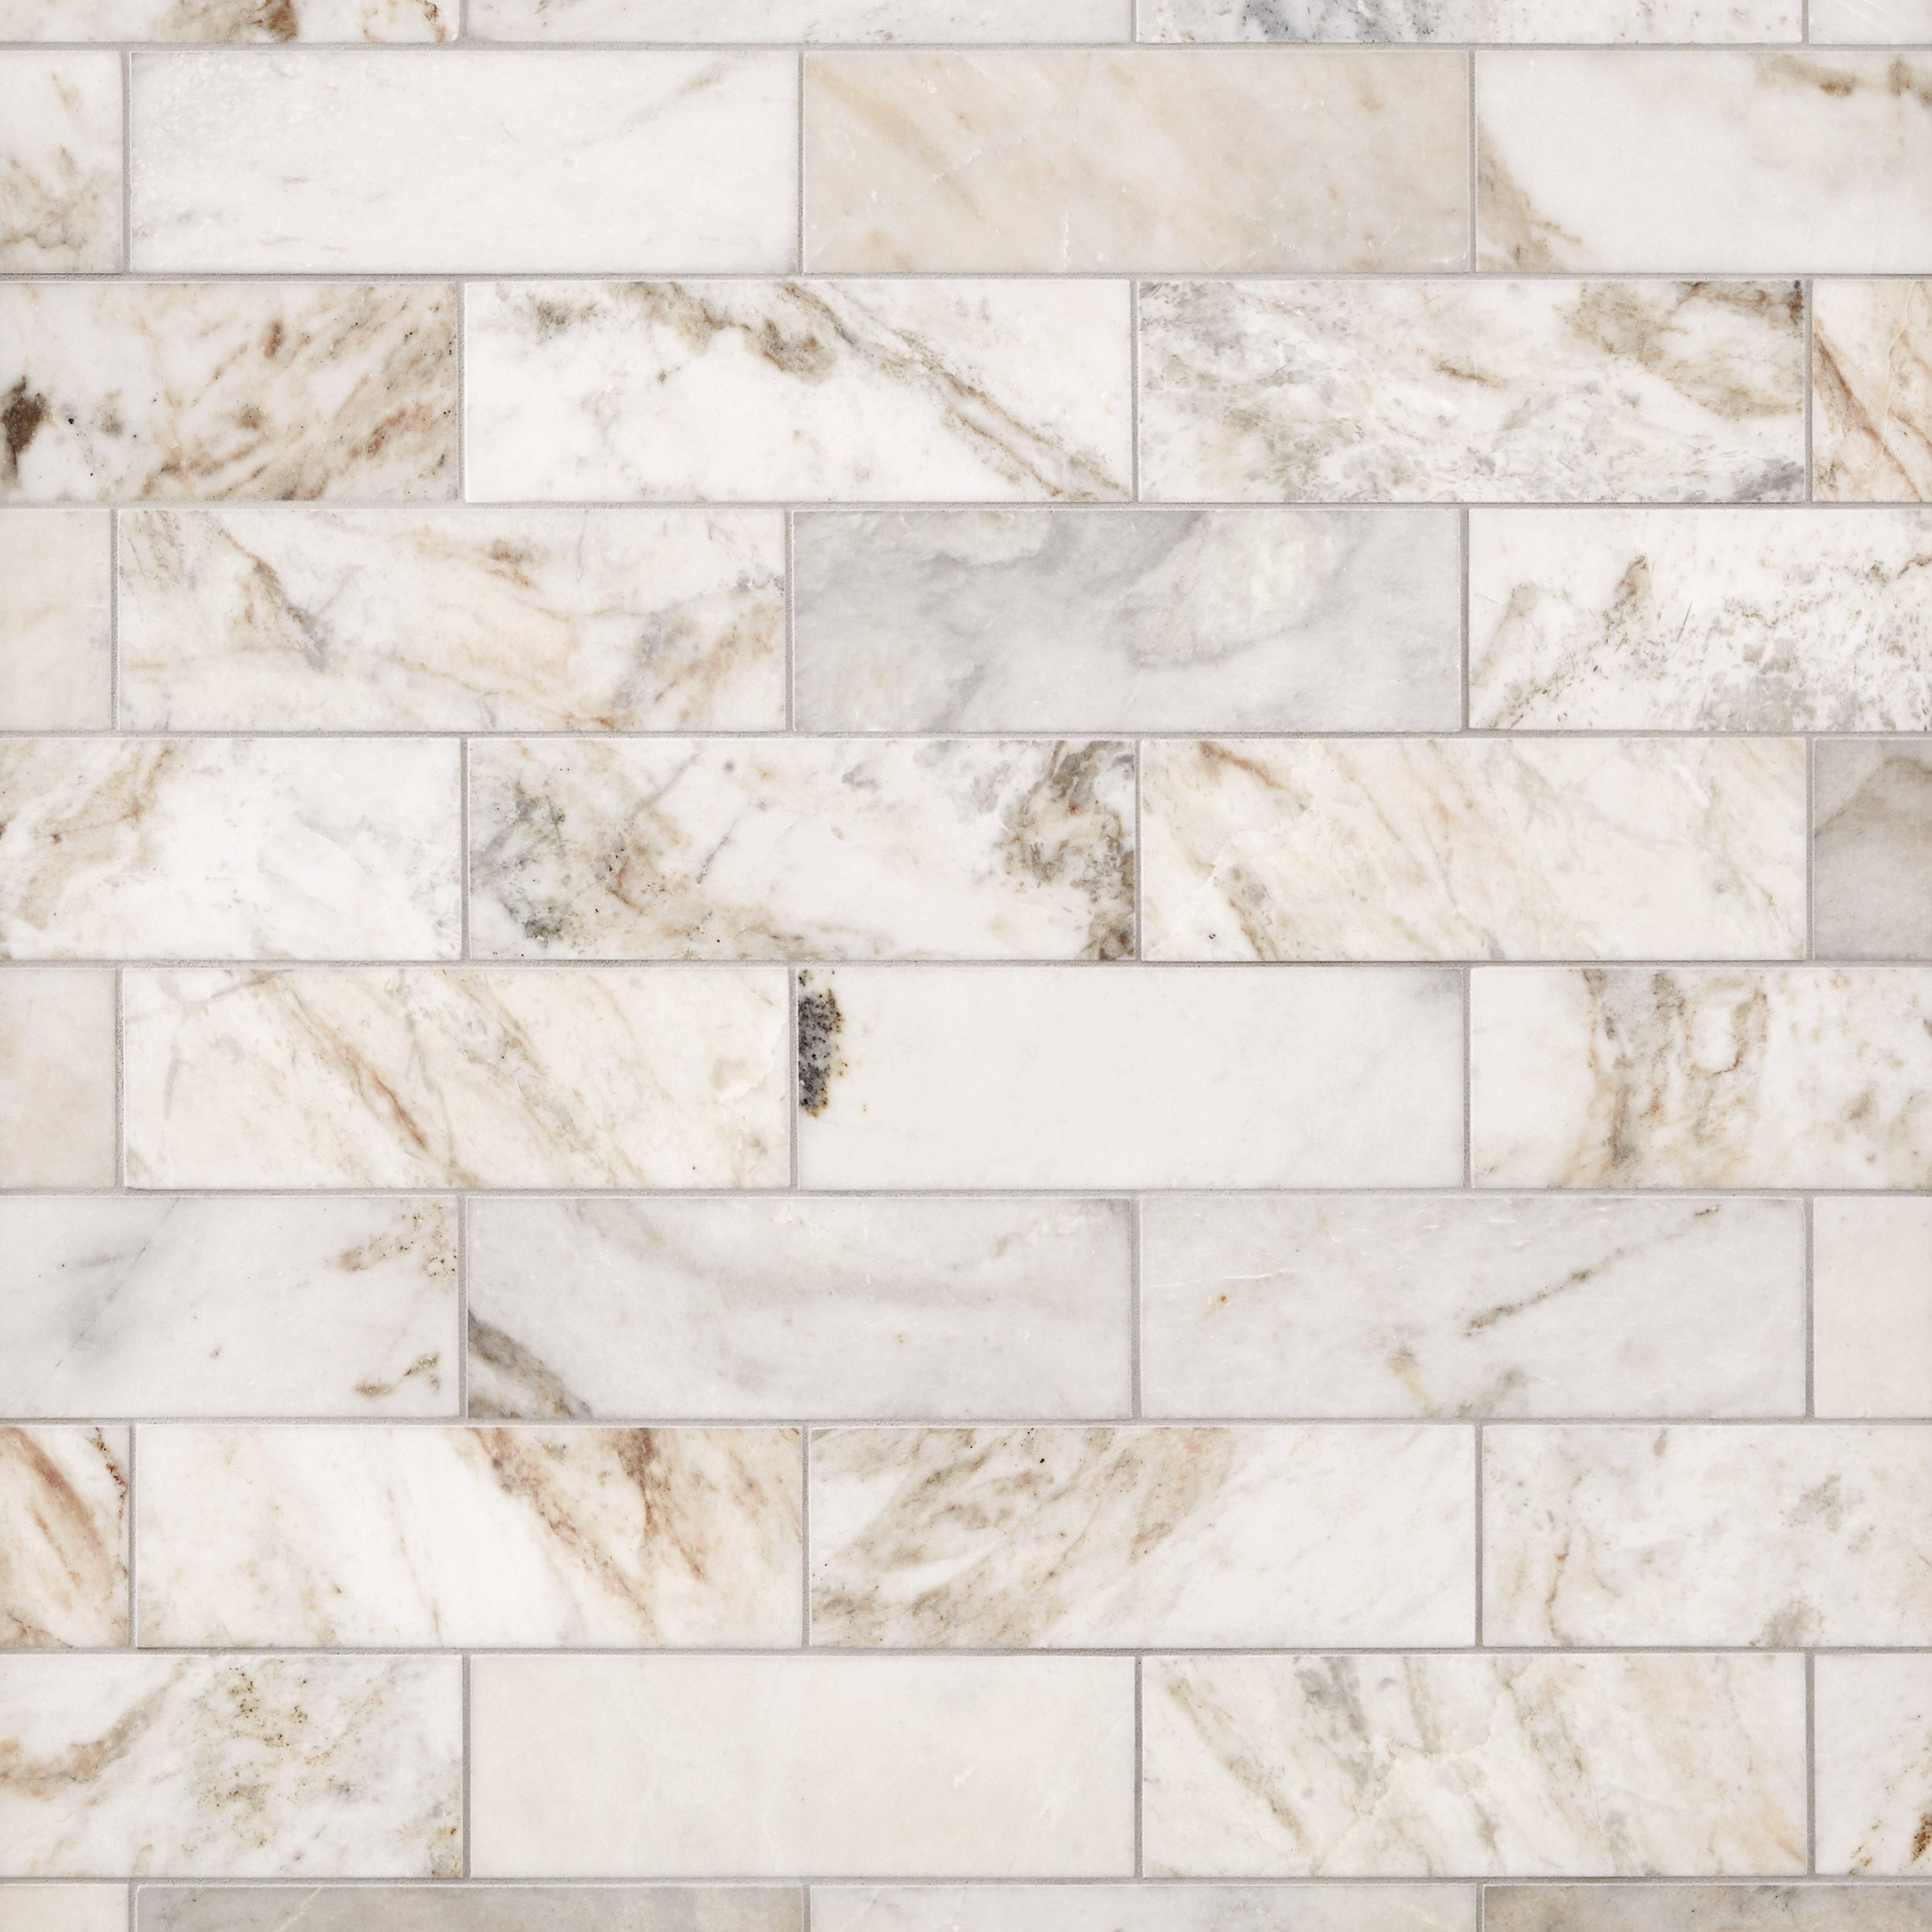 Bianco Orion Marble Tile Decorative Backsplash Kitchen Backsplash Designs Stone Backsplash Kitchen